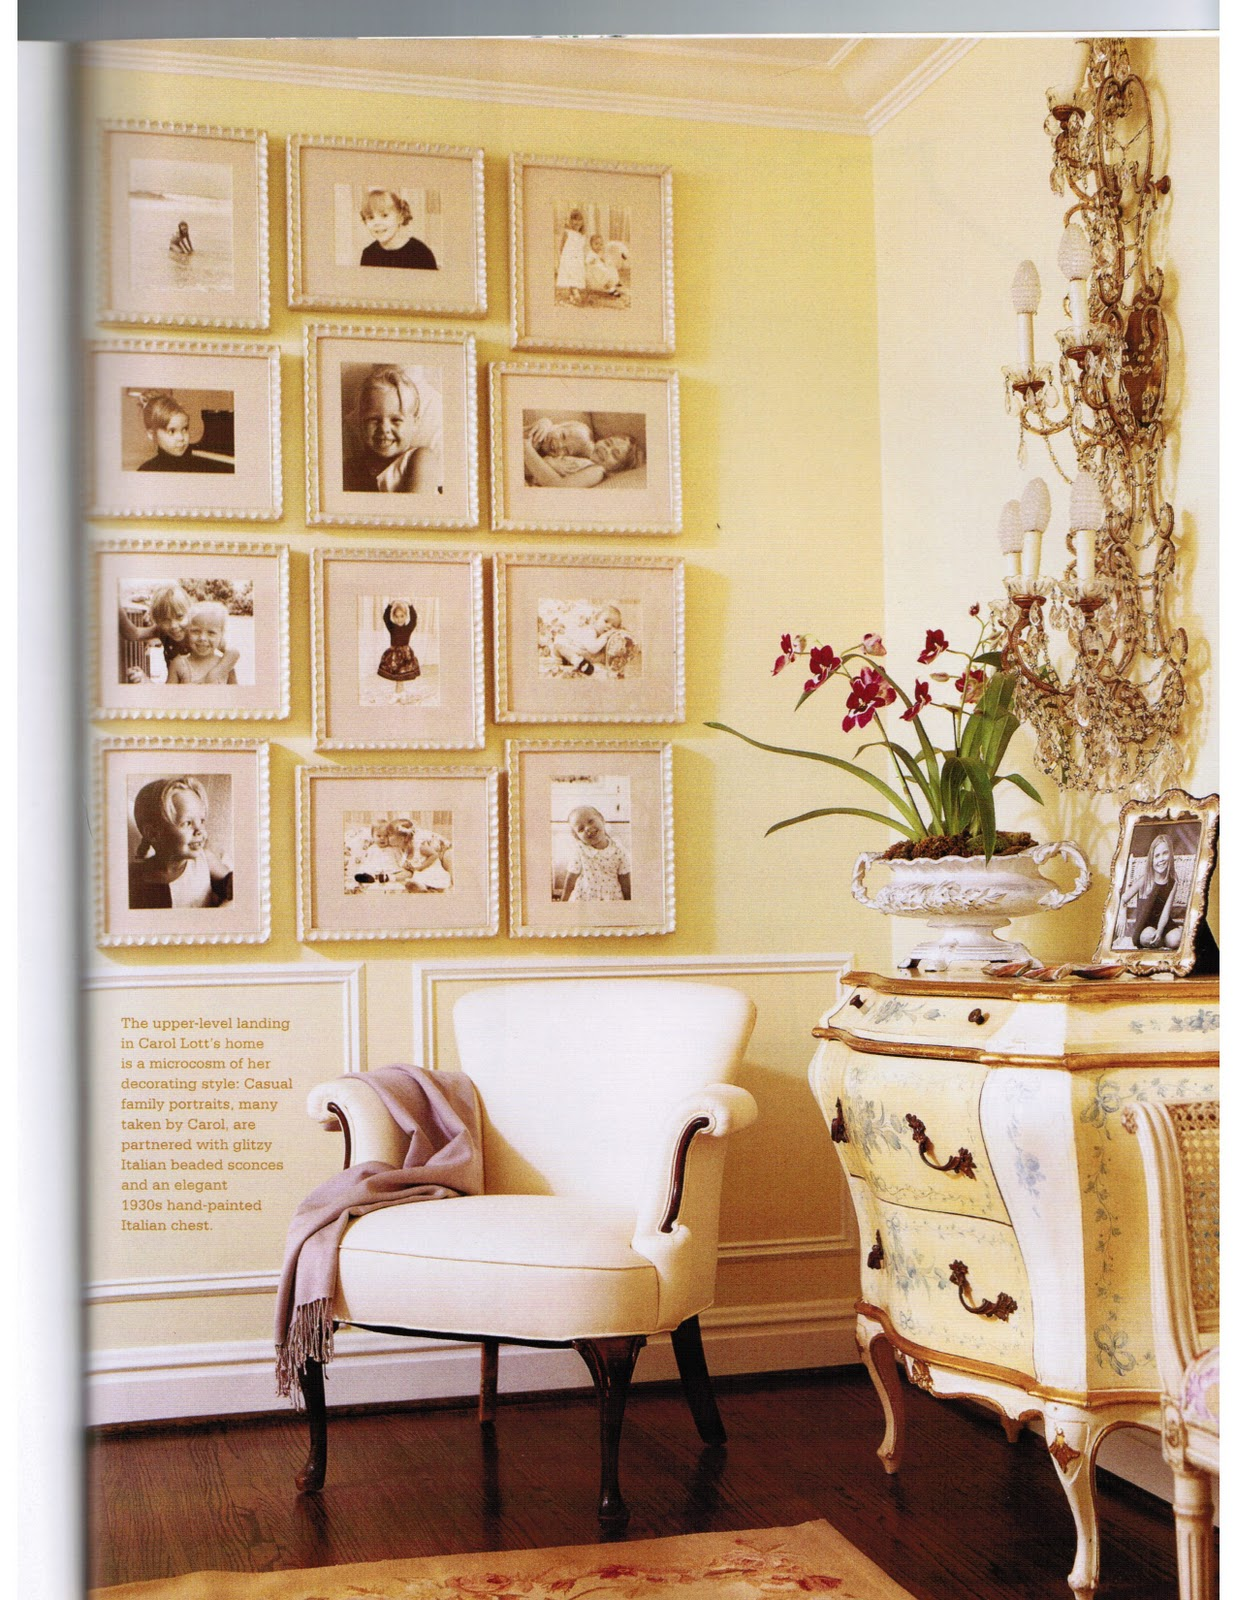 this home from country french magazine caught my attention